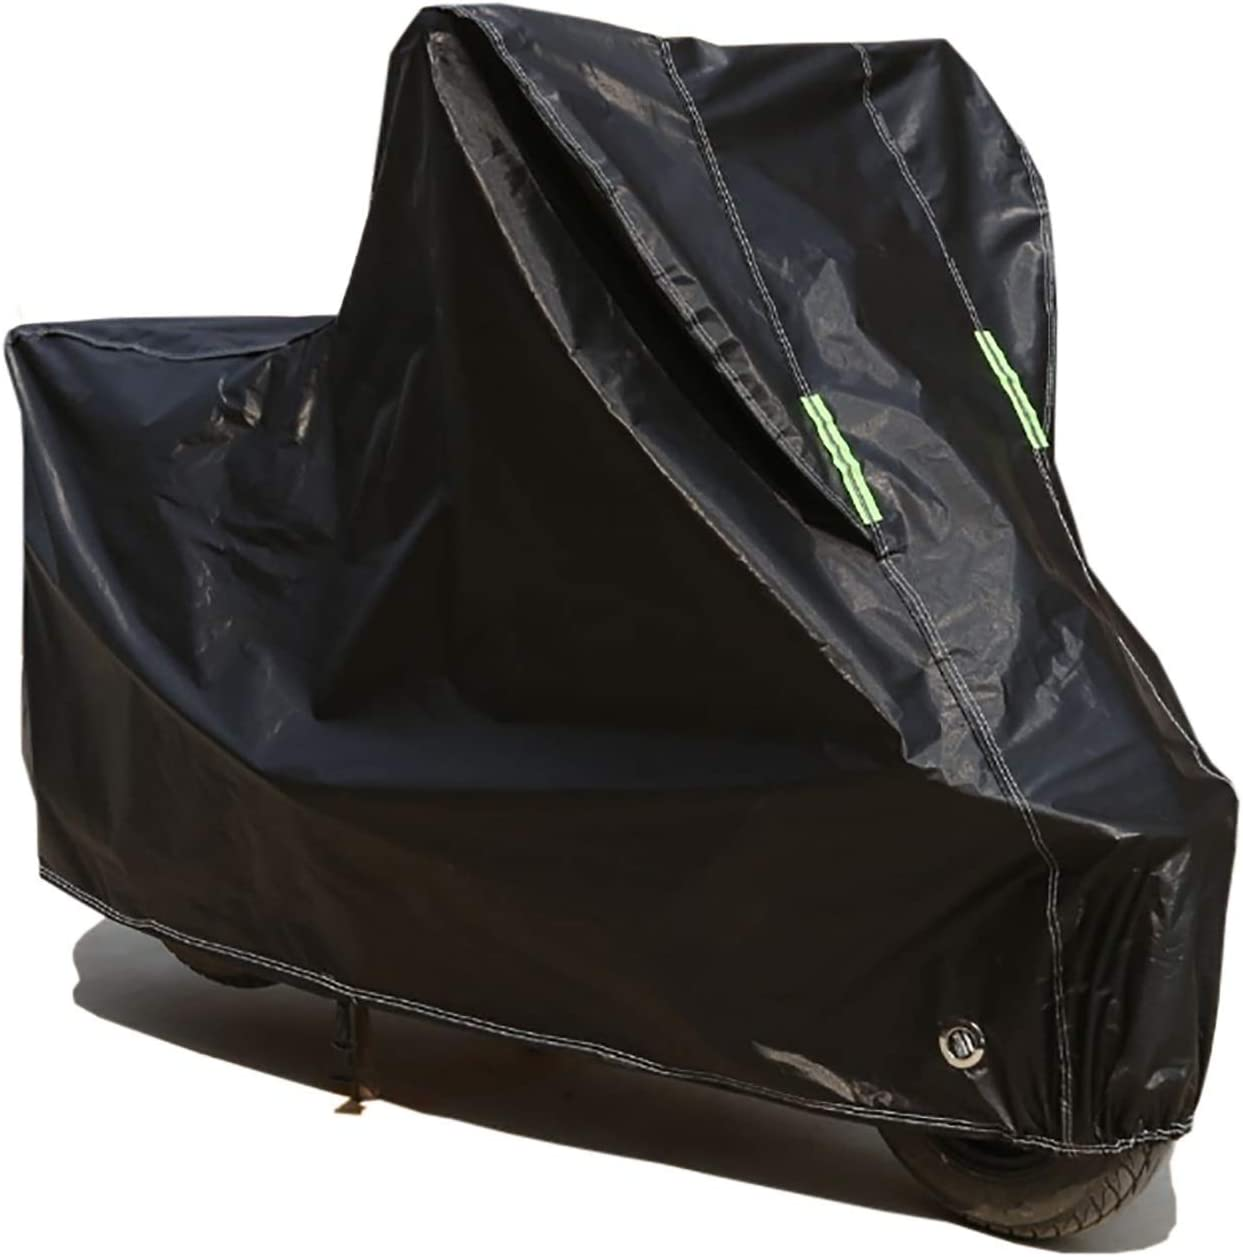 OFFicial shop HEQCG Motorcycle Cover Compatible Limited time cheap sale R18 Covers with BMW